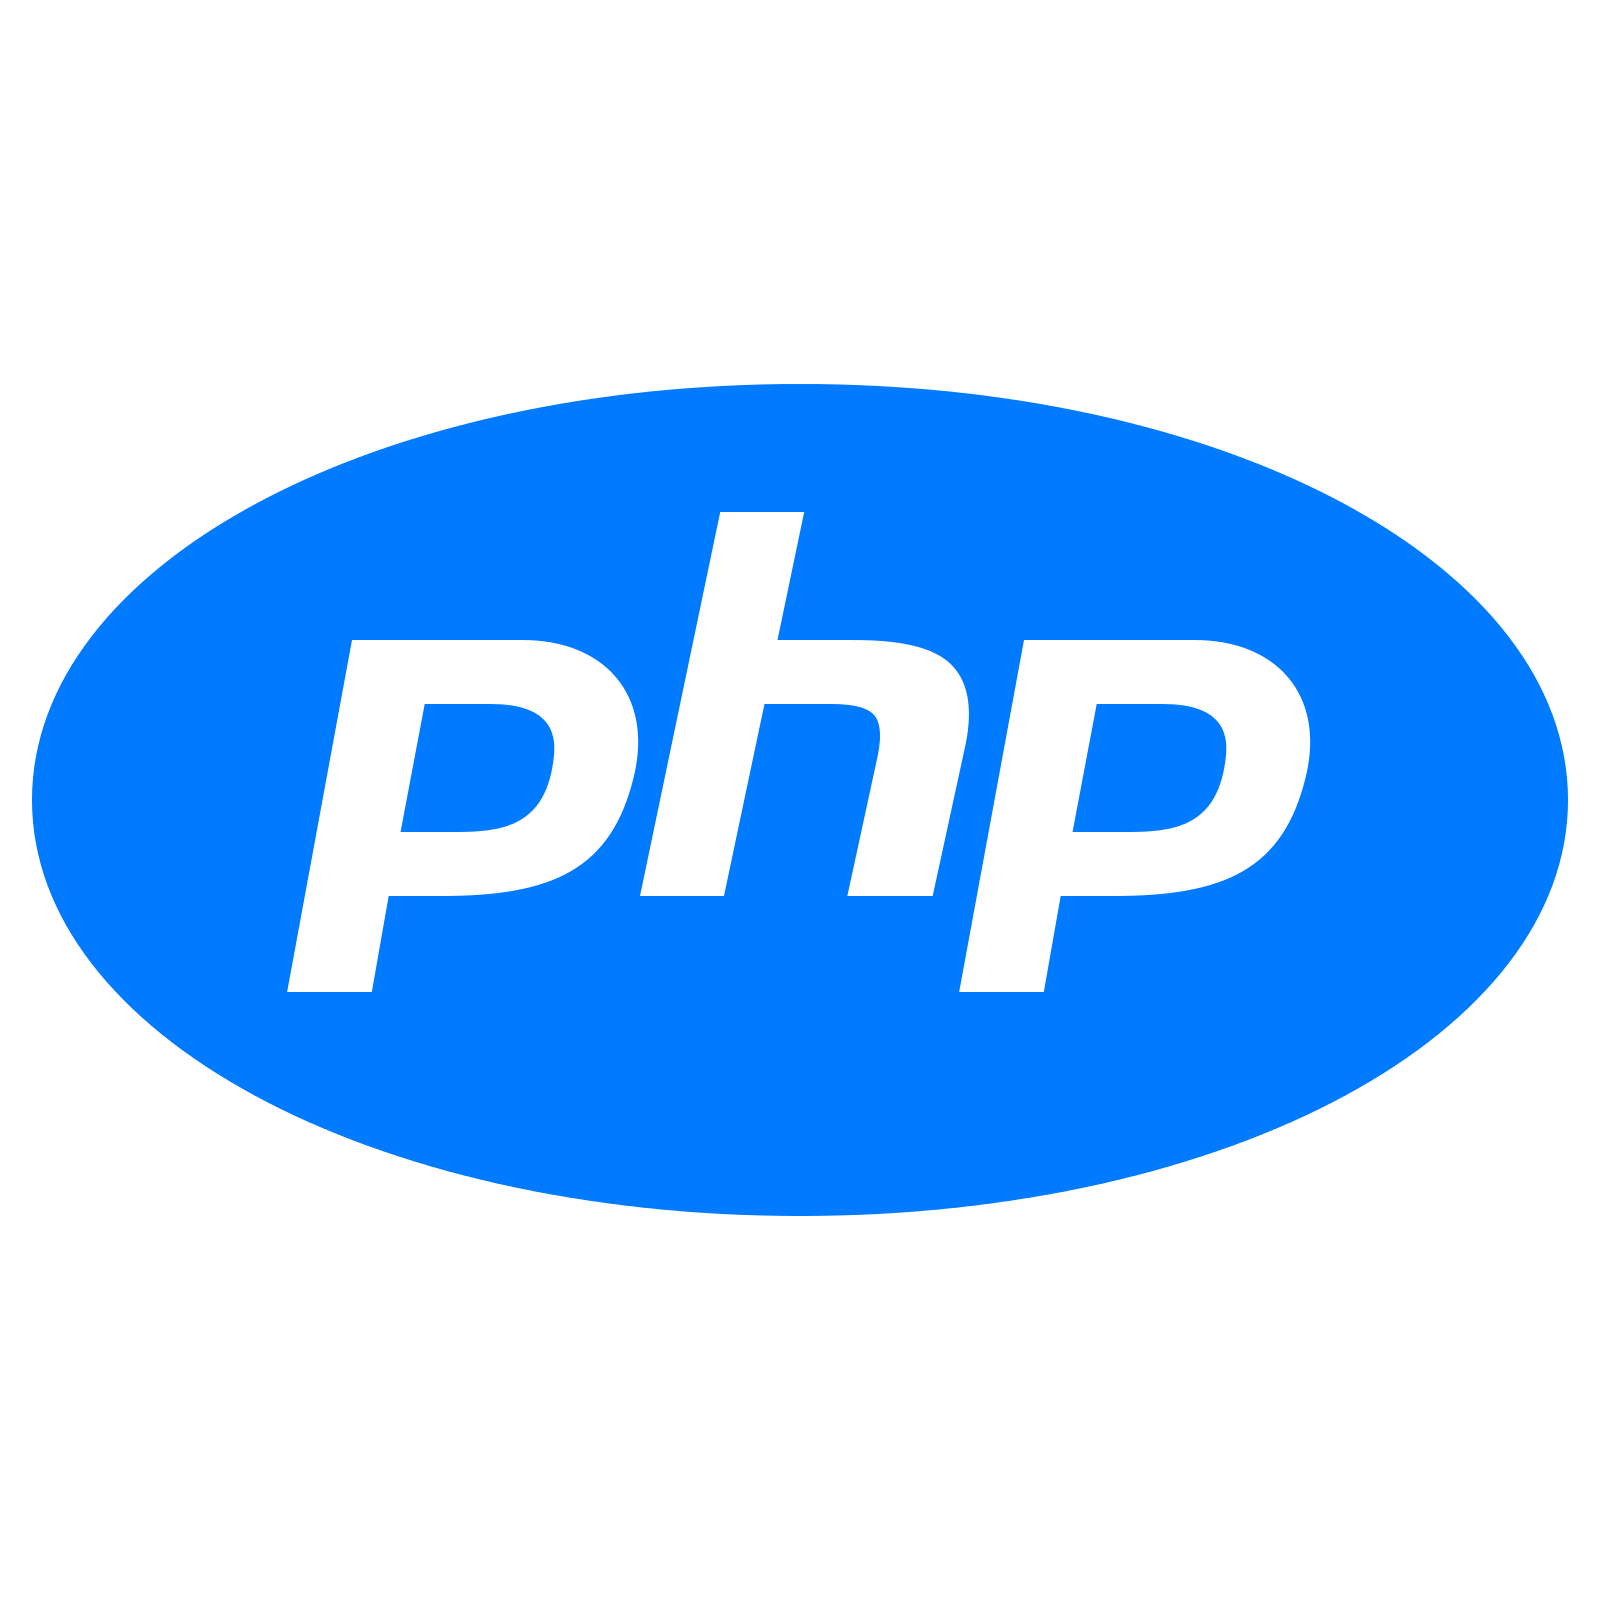 Php clipart image royalty free library The Brussels Times image royalty free library